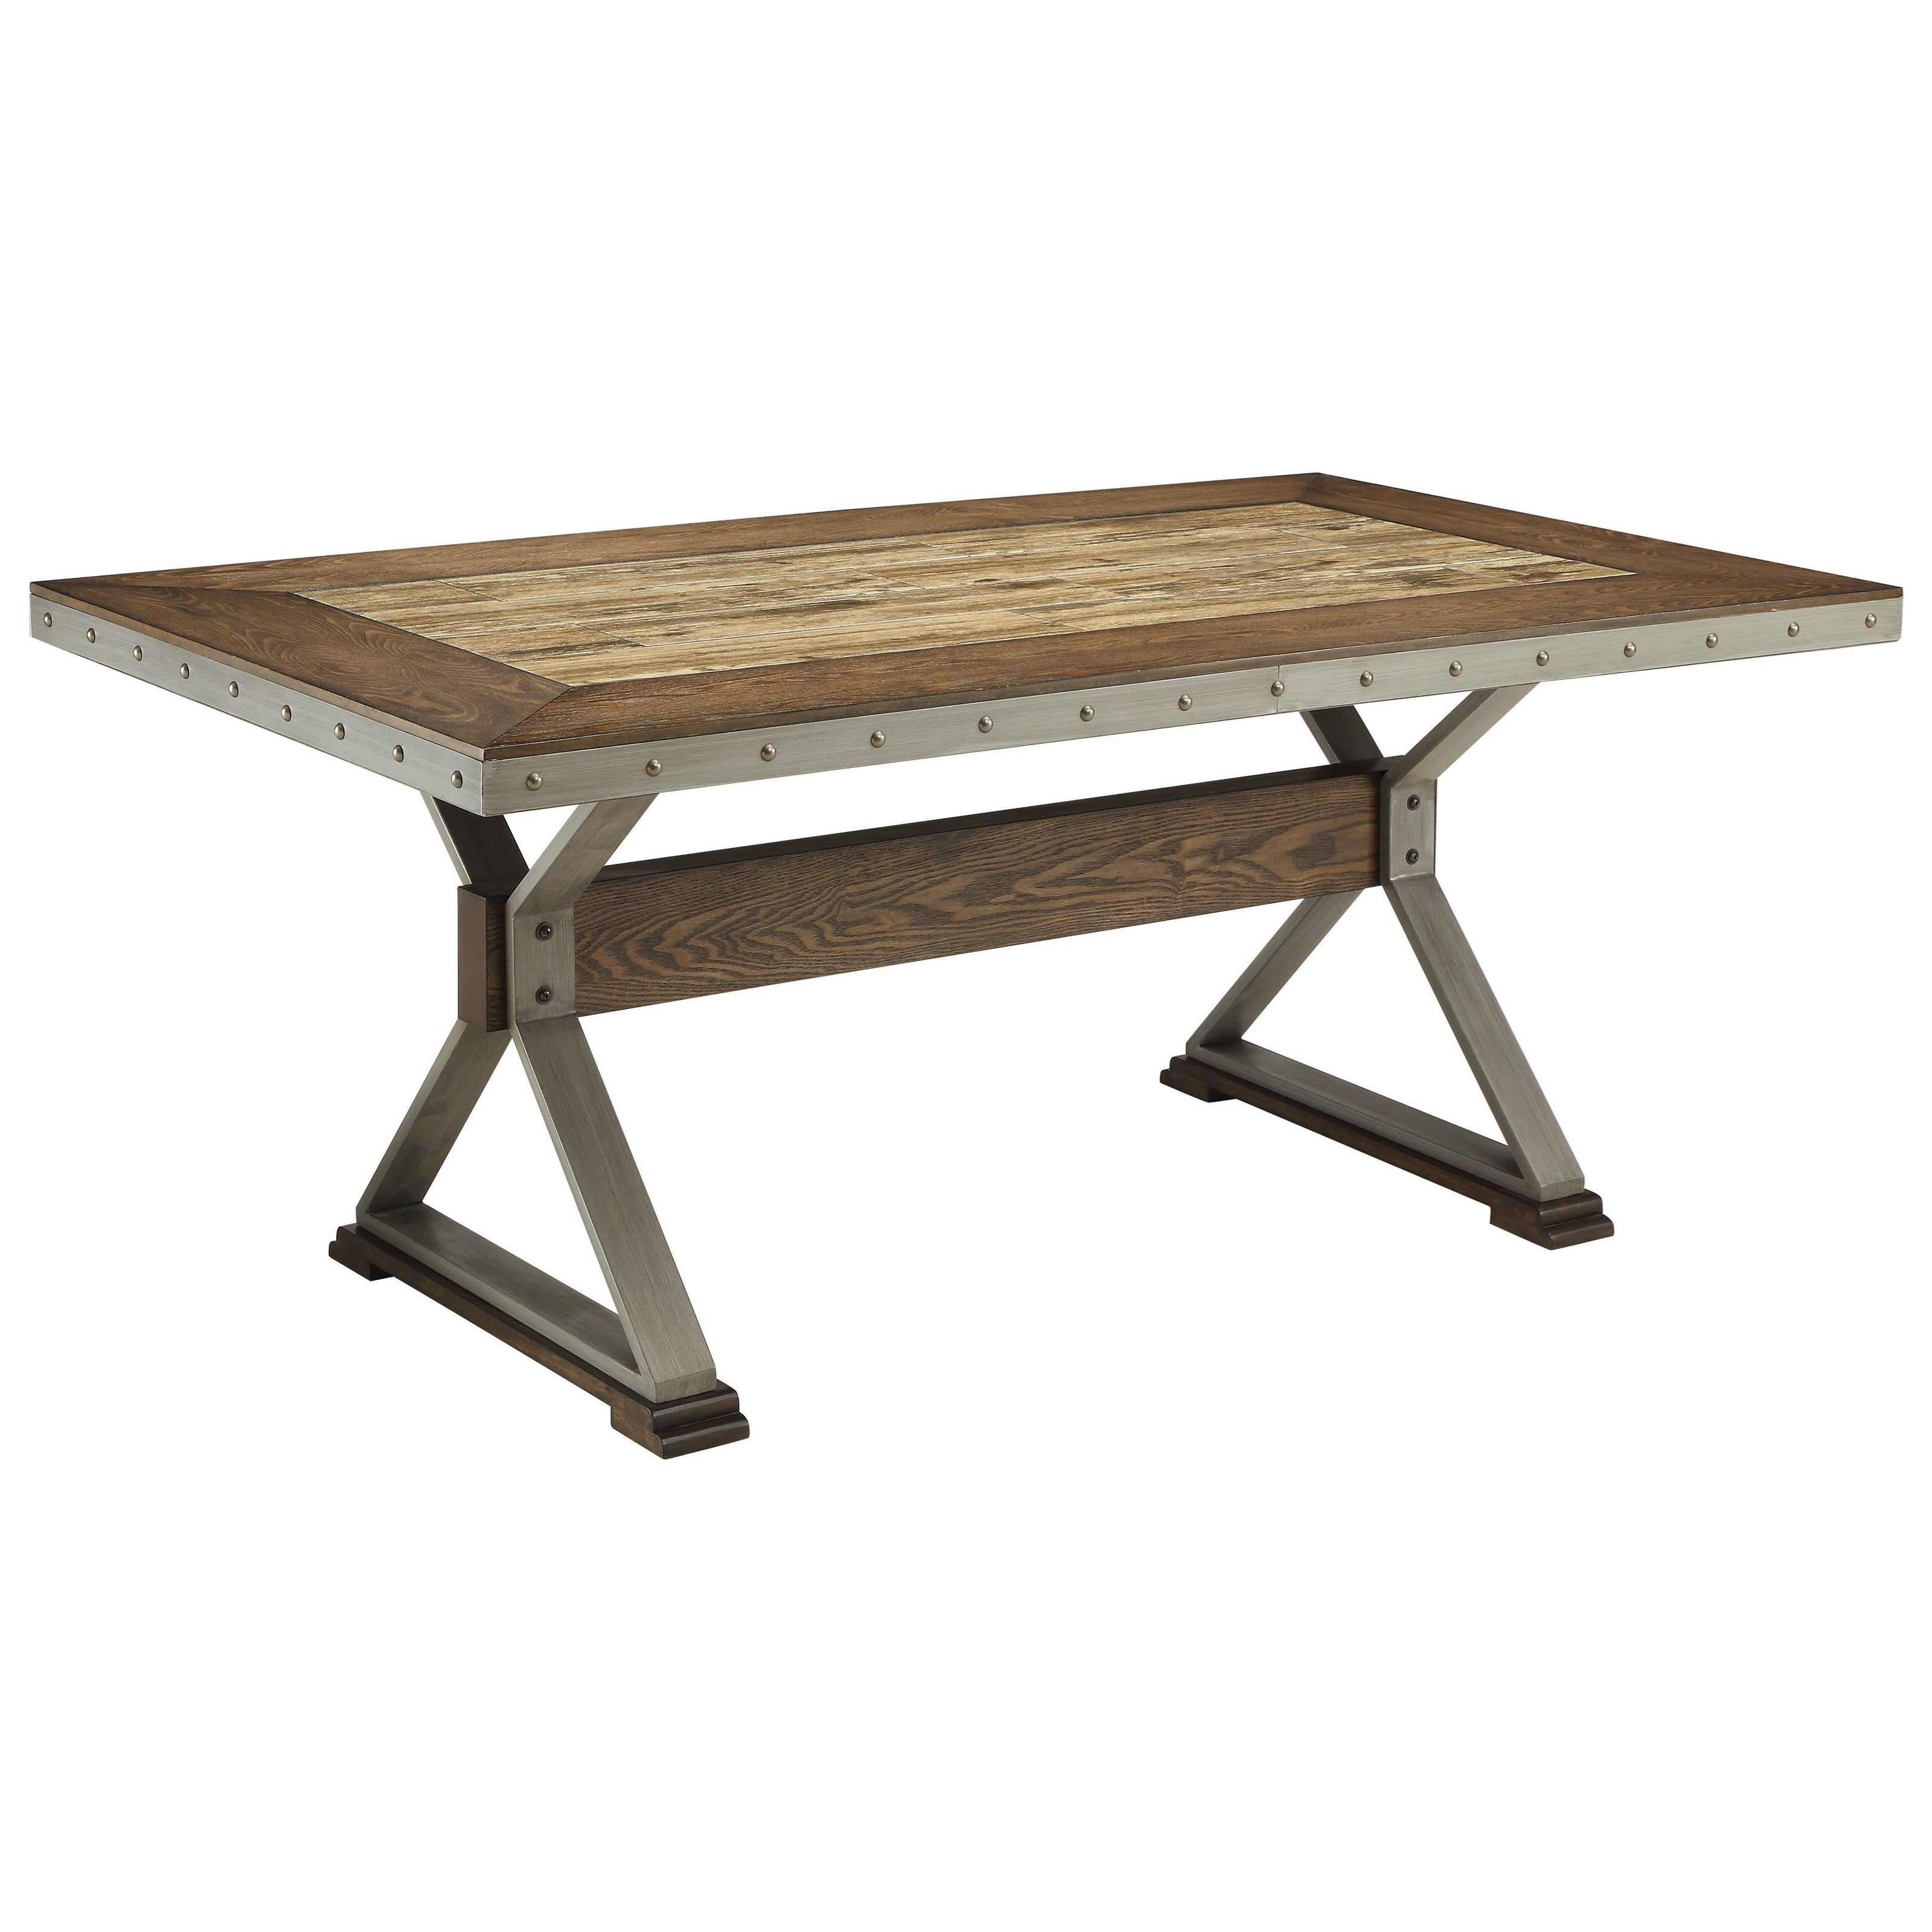 rectangular rustic dining table with ceramic tile top by coaster